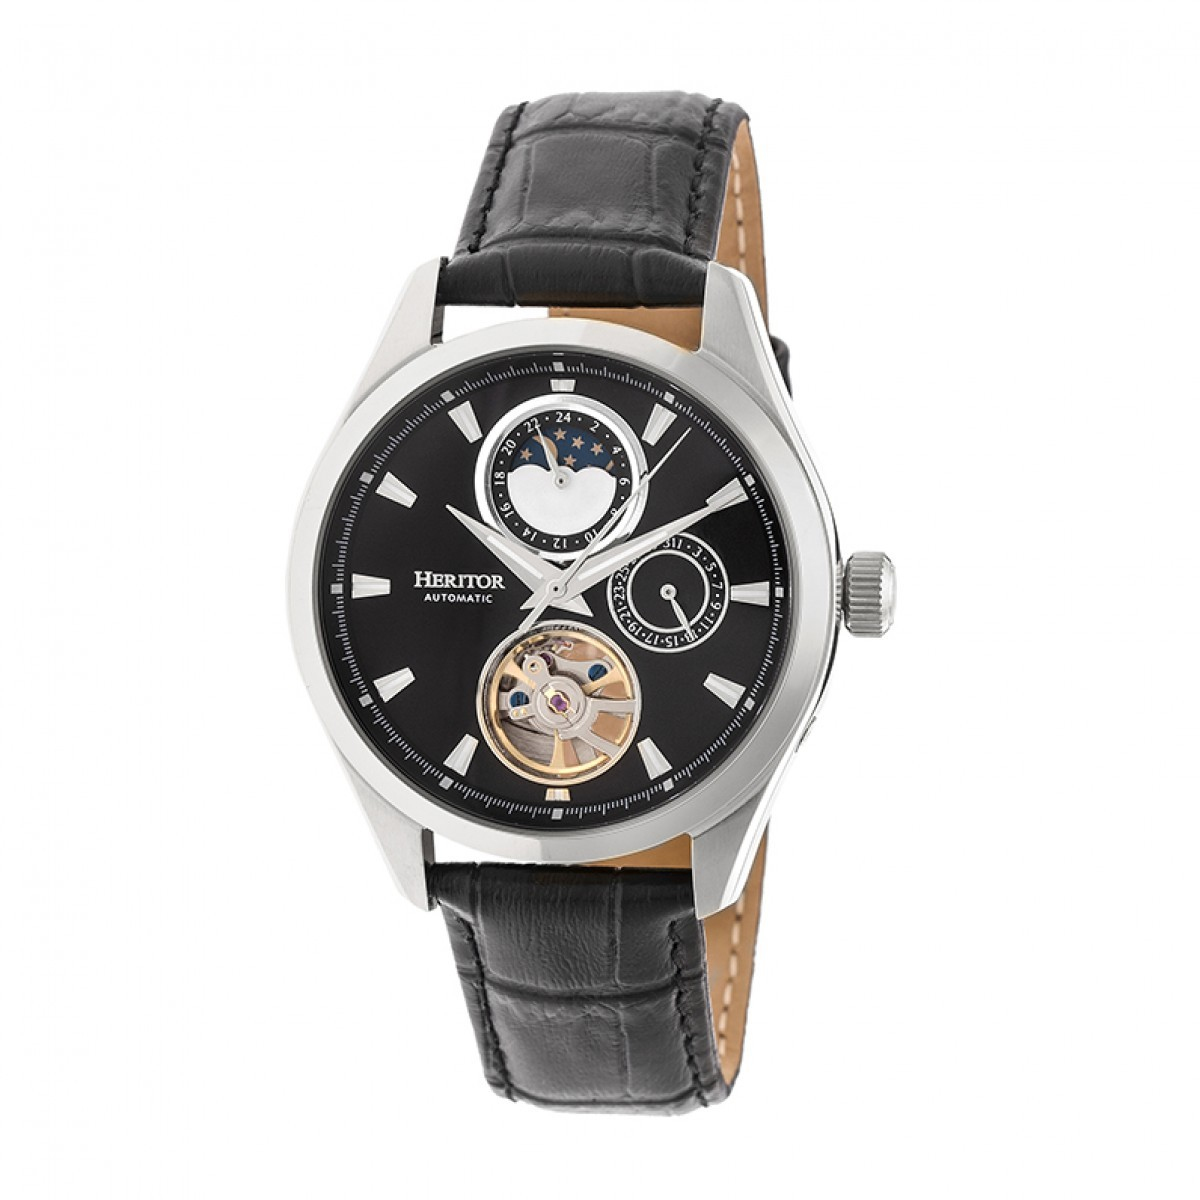 Primary image for Heritor Automatic Sebastian Semi-Skeleton Leather-Band Watch  - Silver/Black